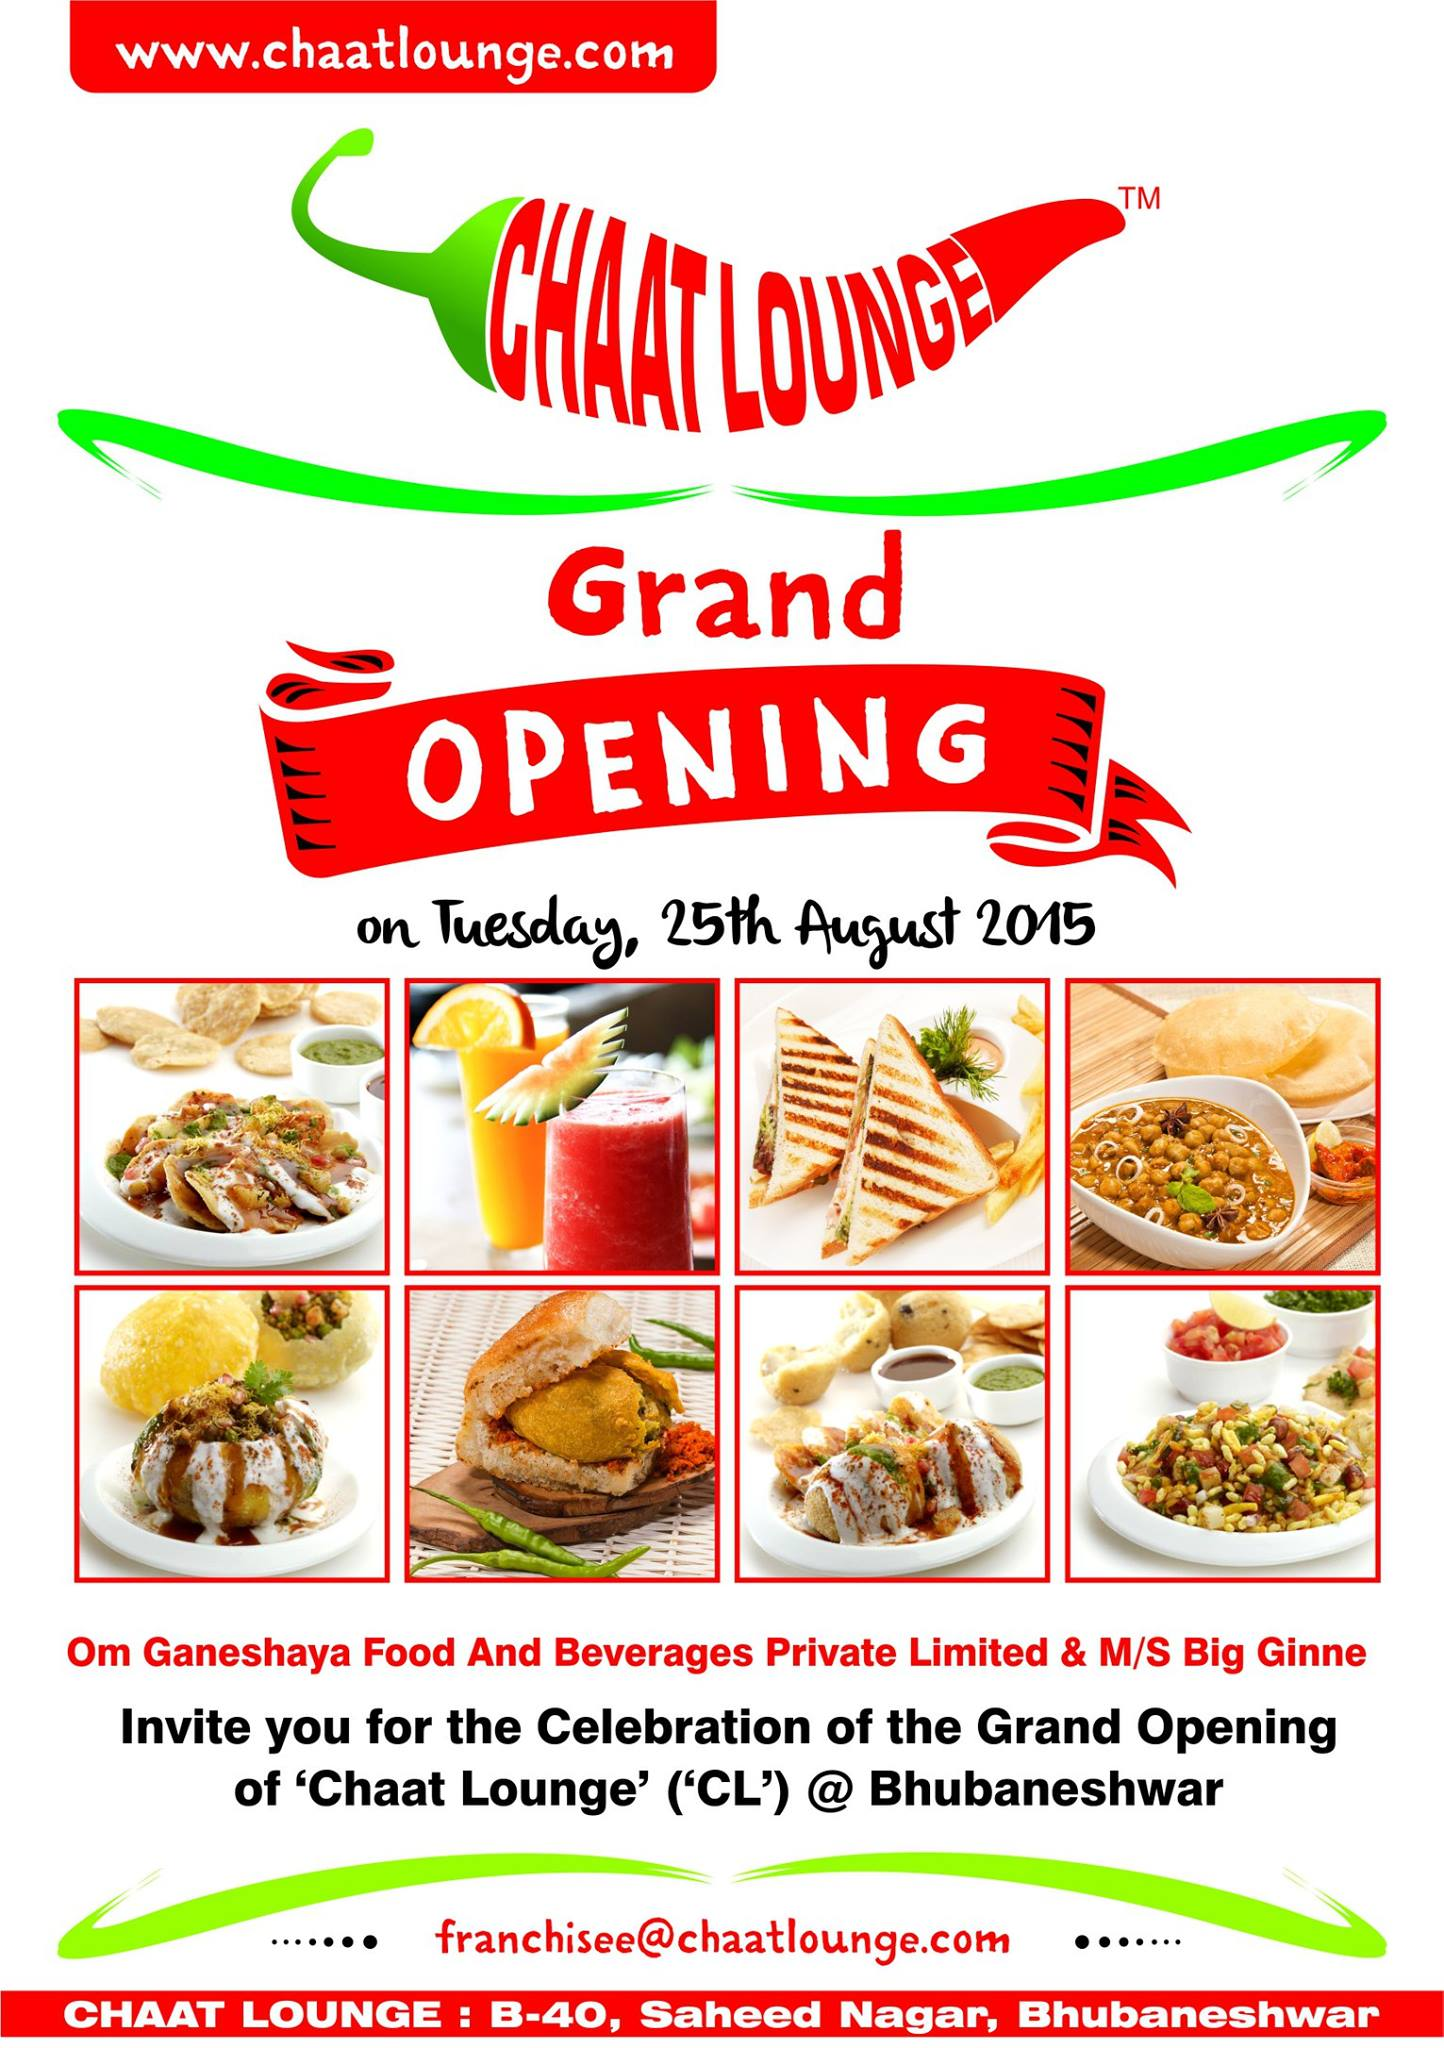 chaat lounge bhubaneswar buzz 1